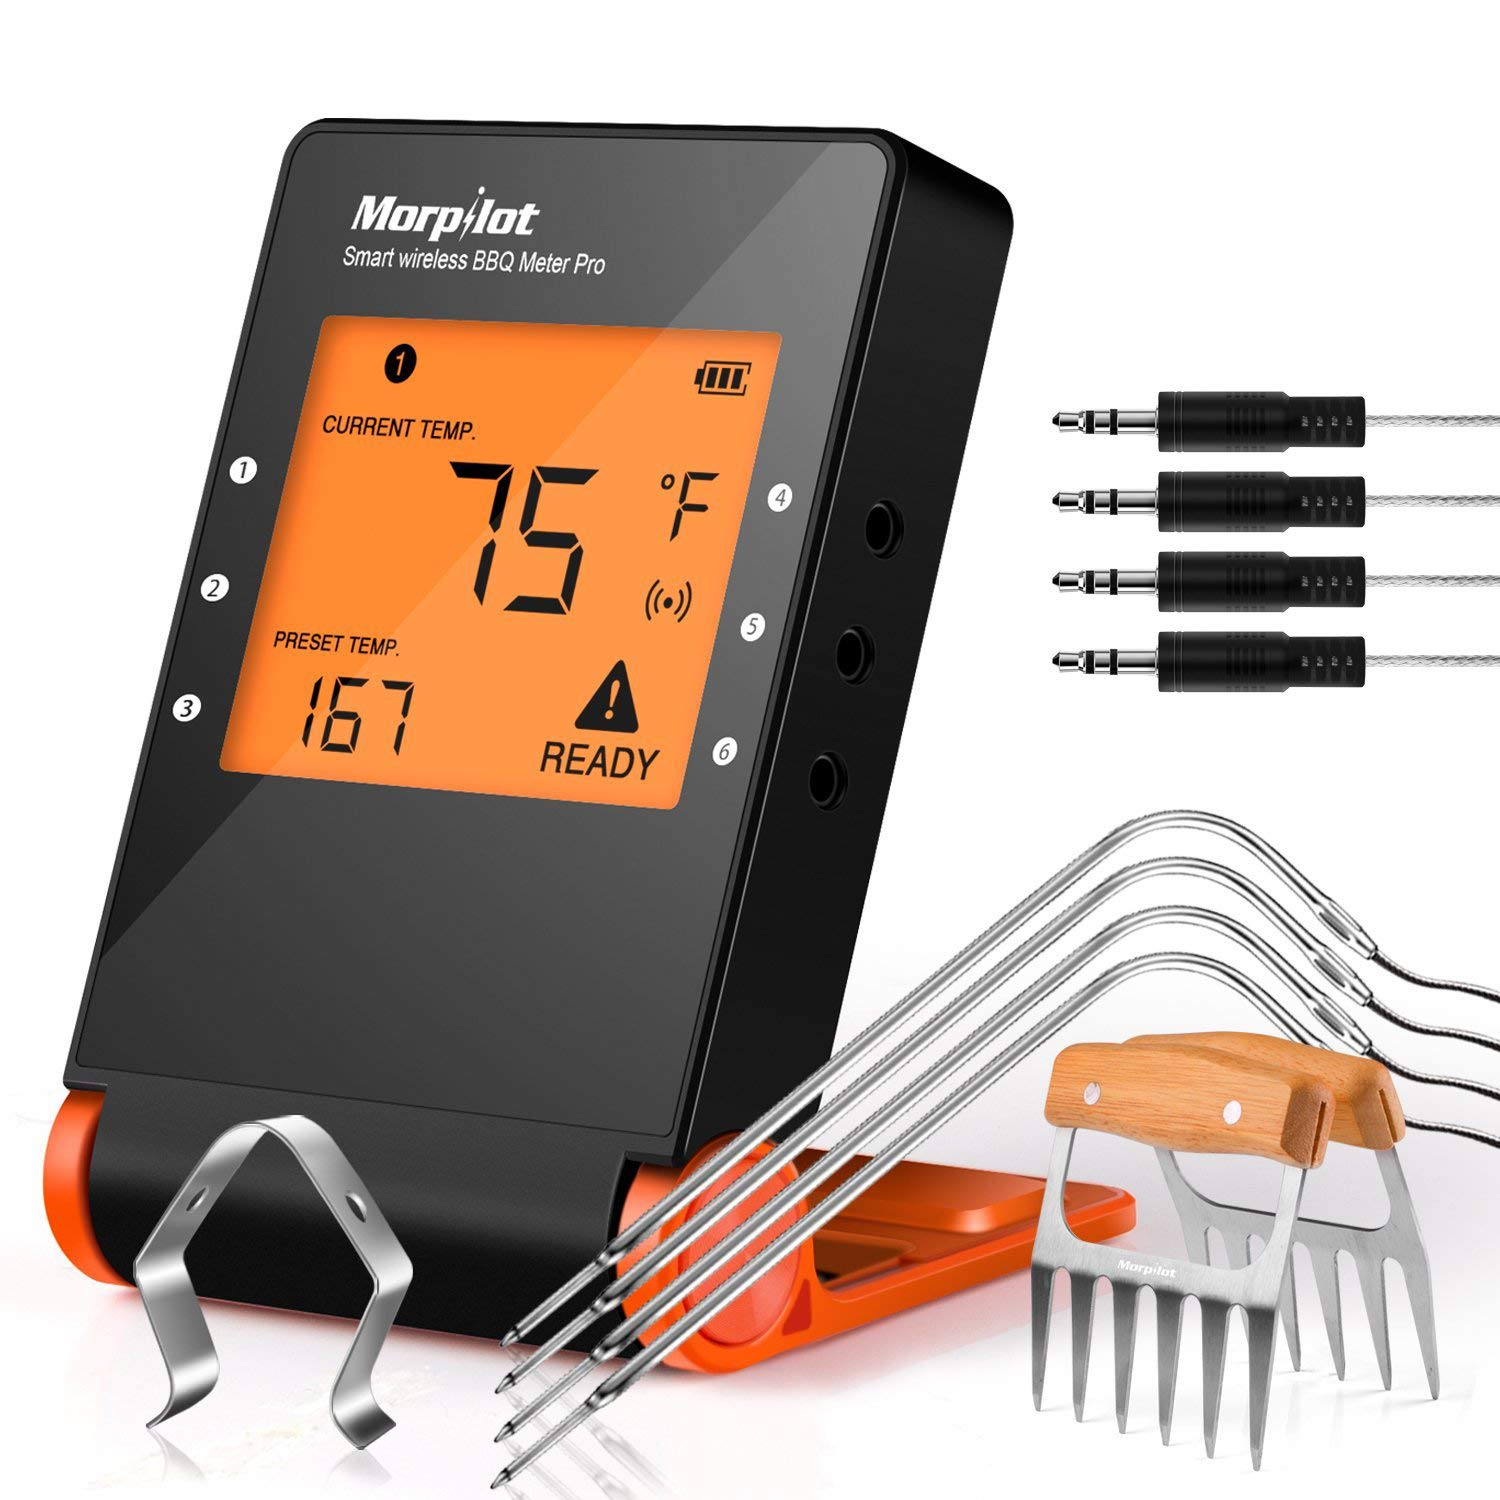 Wireless Grill Thermometer, Morpilot Bluetooth Wifi BBQ Thermometer/Meat Thermometer/Smoker Thermometer with 4 Probes 2 Meat Claws, for Grilling Smoking Oven Kitchen by Morpilot